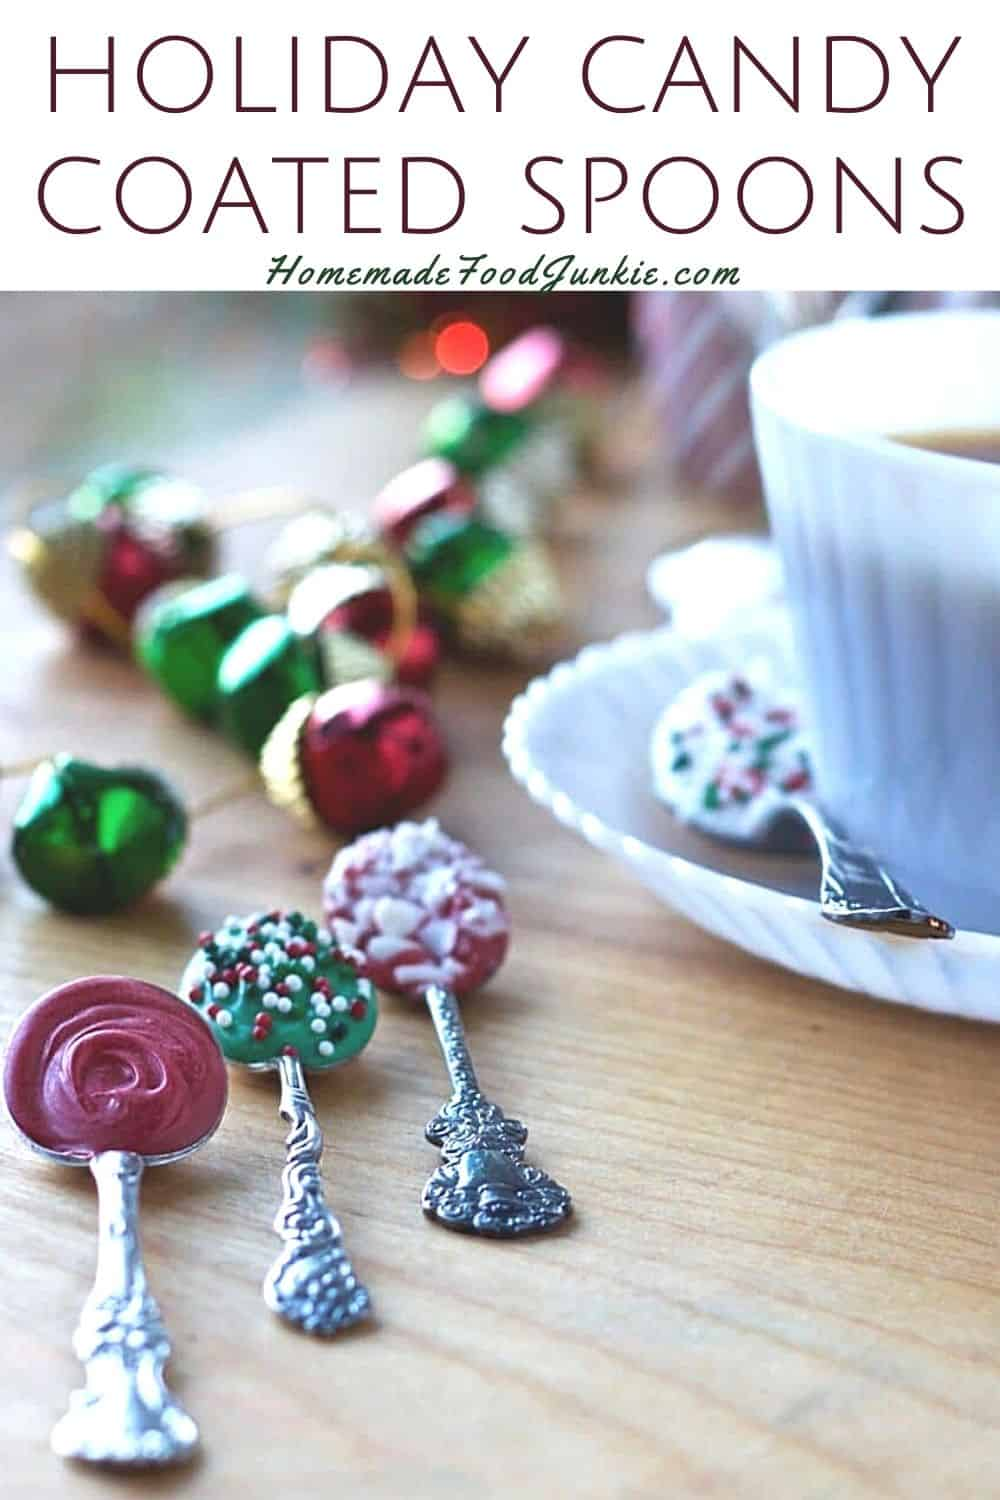 Holiday candy coated spoons-pin image